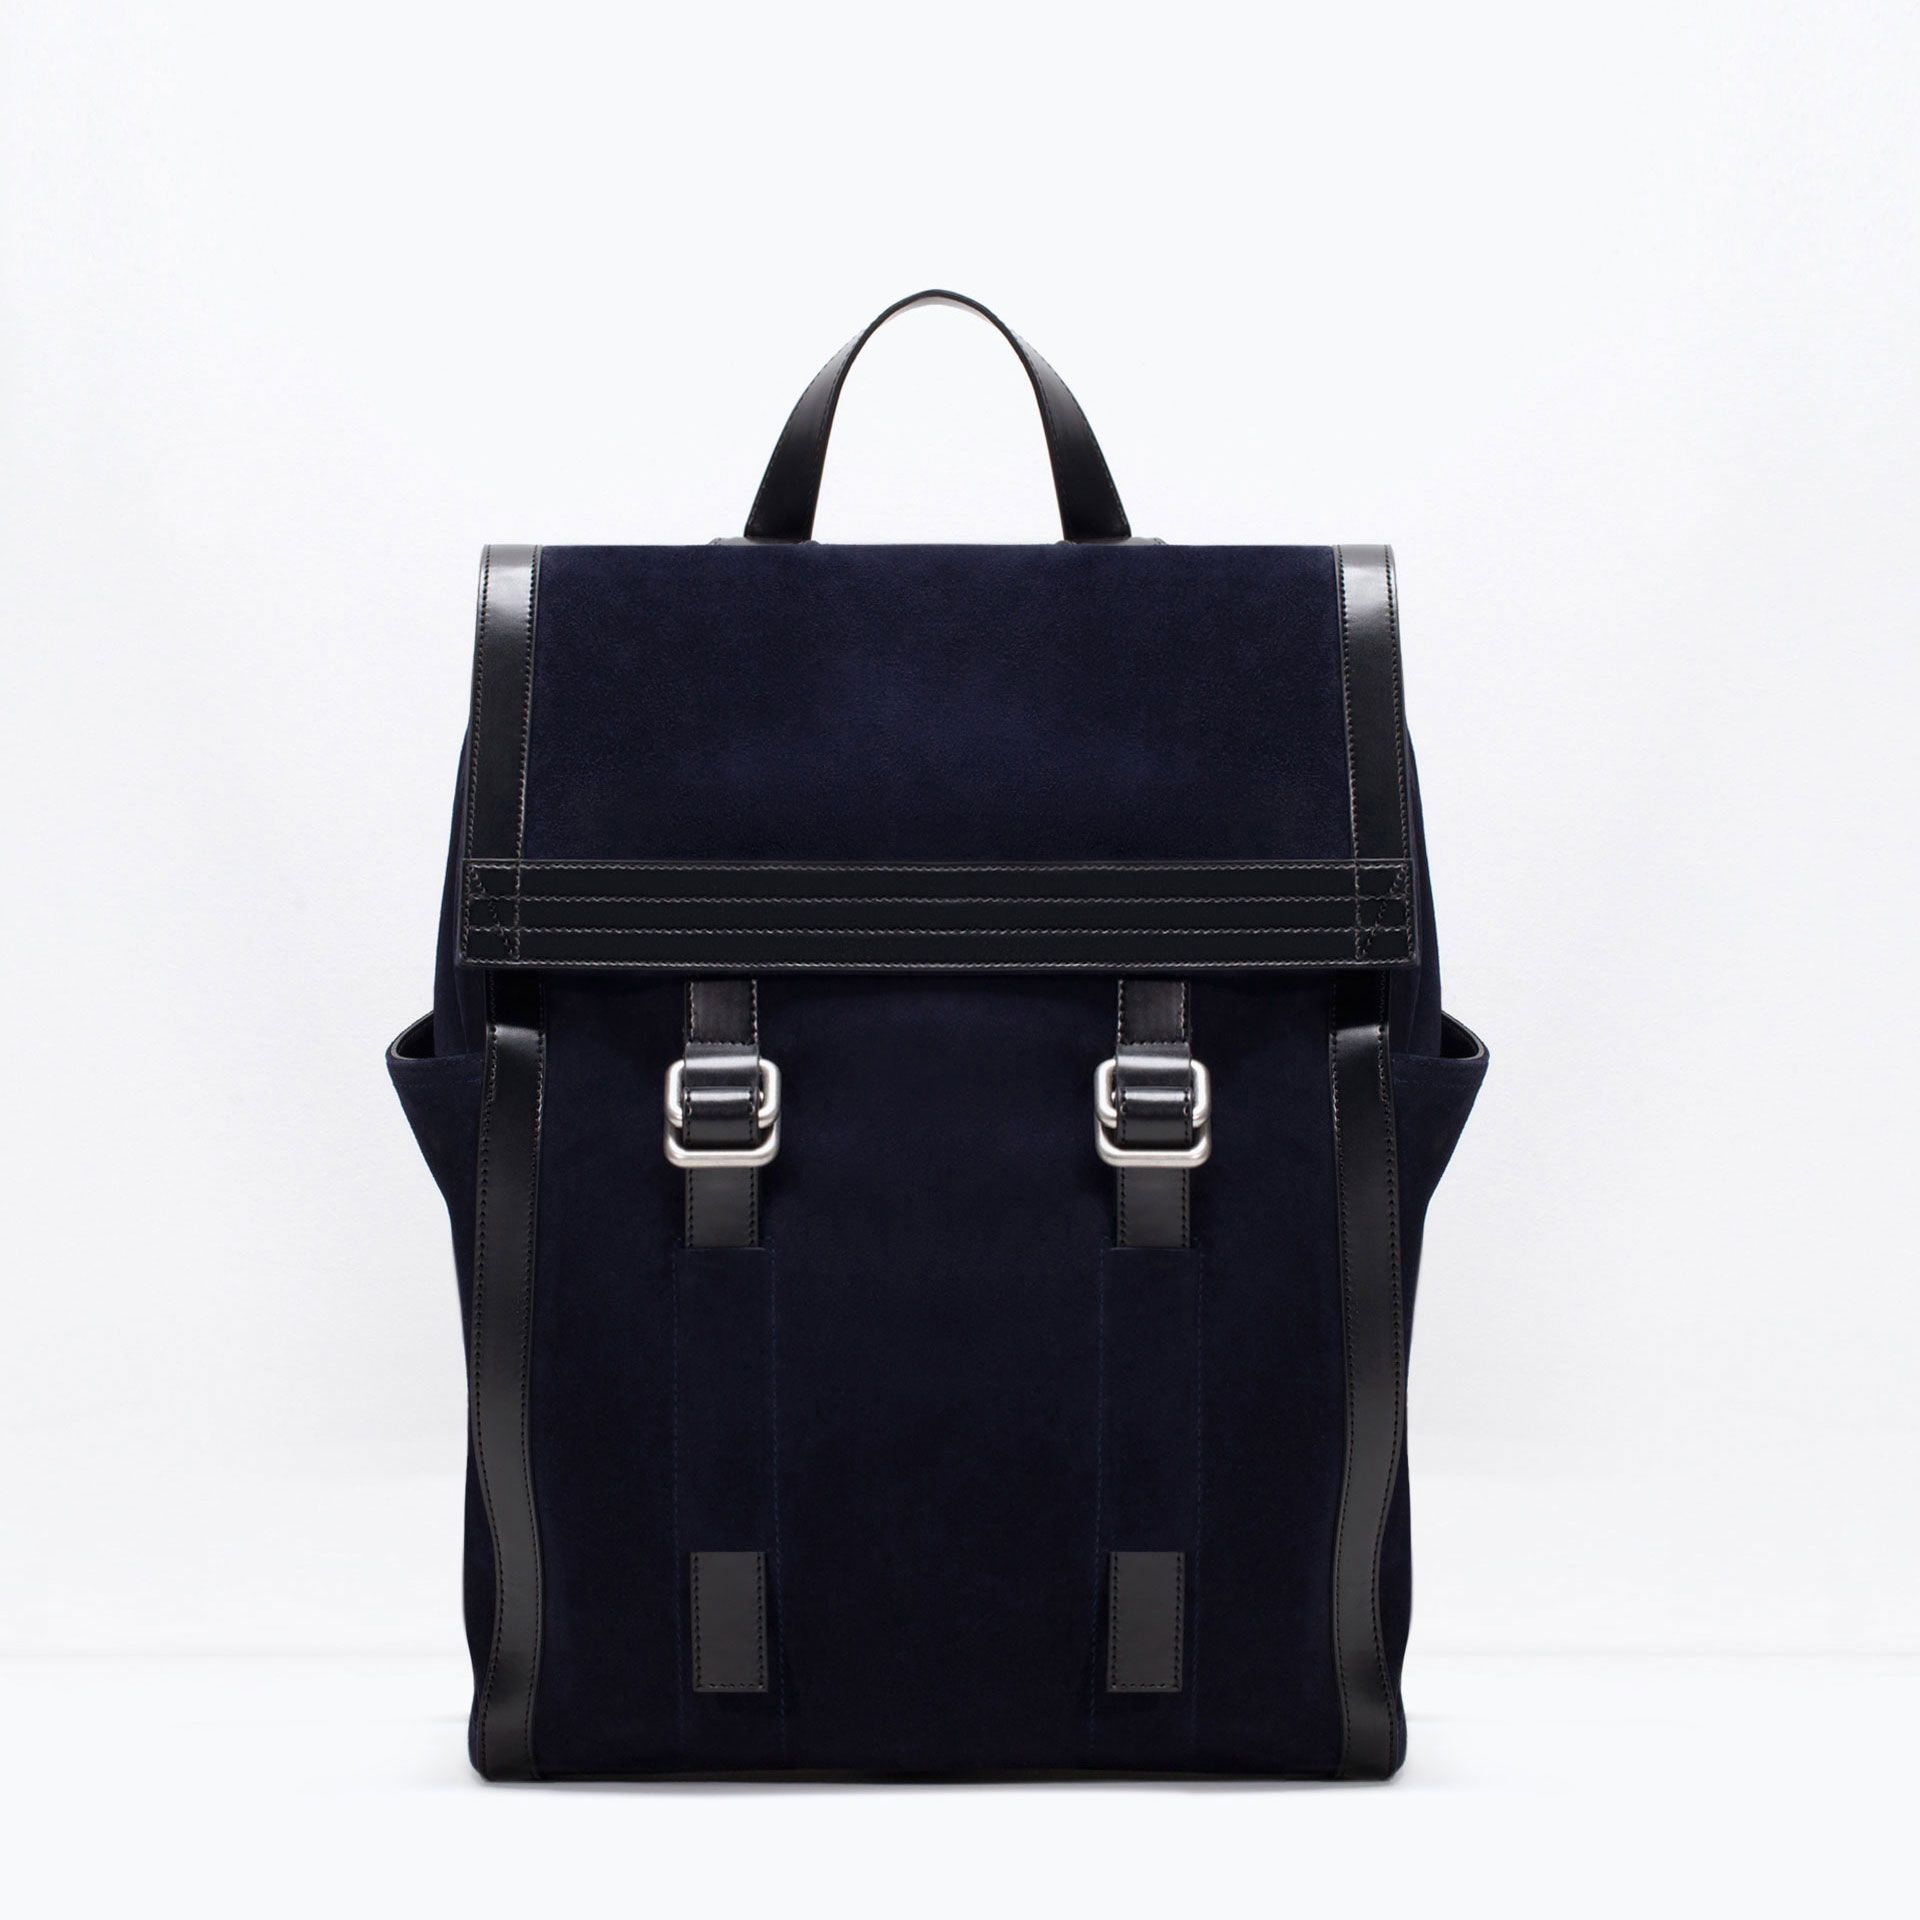 4ee441bb85 ZARA - COLLECTION SS15 - COMBINATION LEATHER RUCKSACK | Quirks and ...